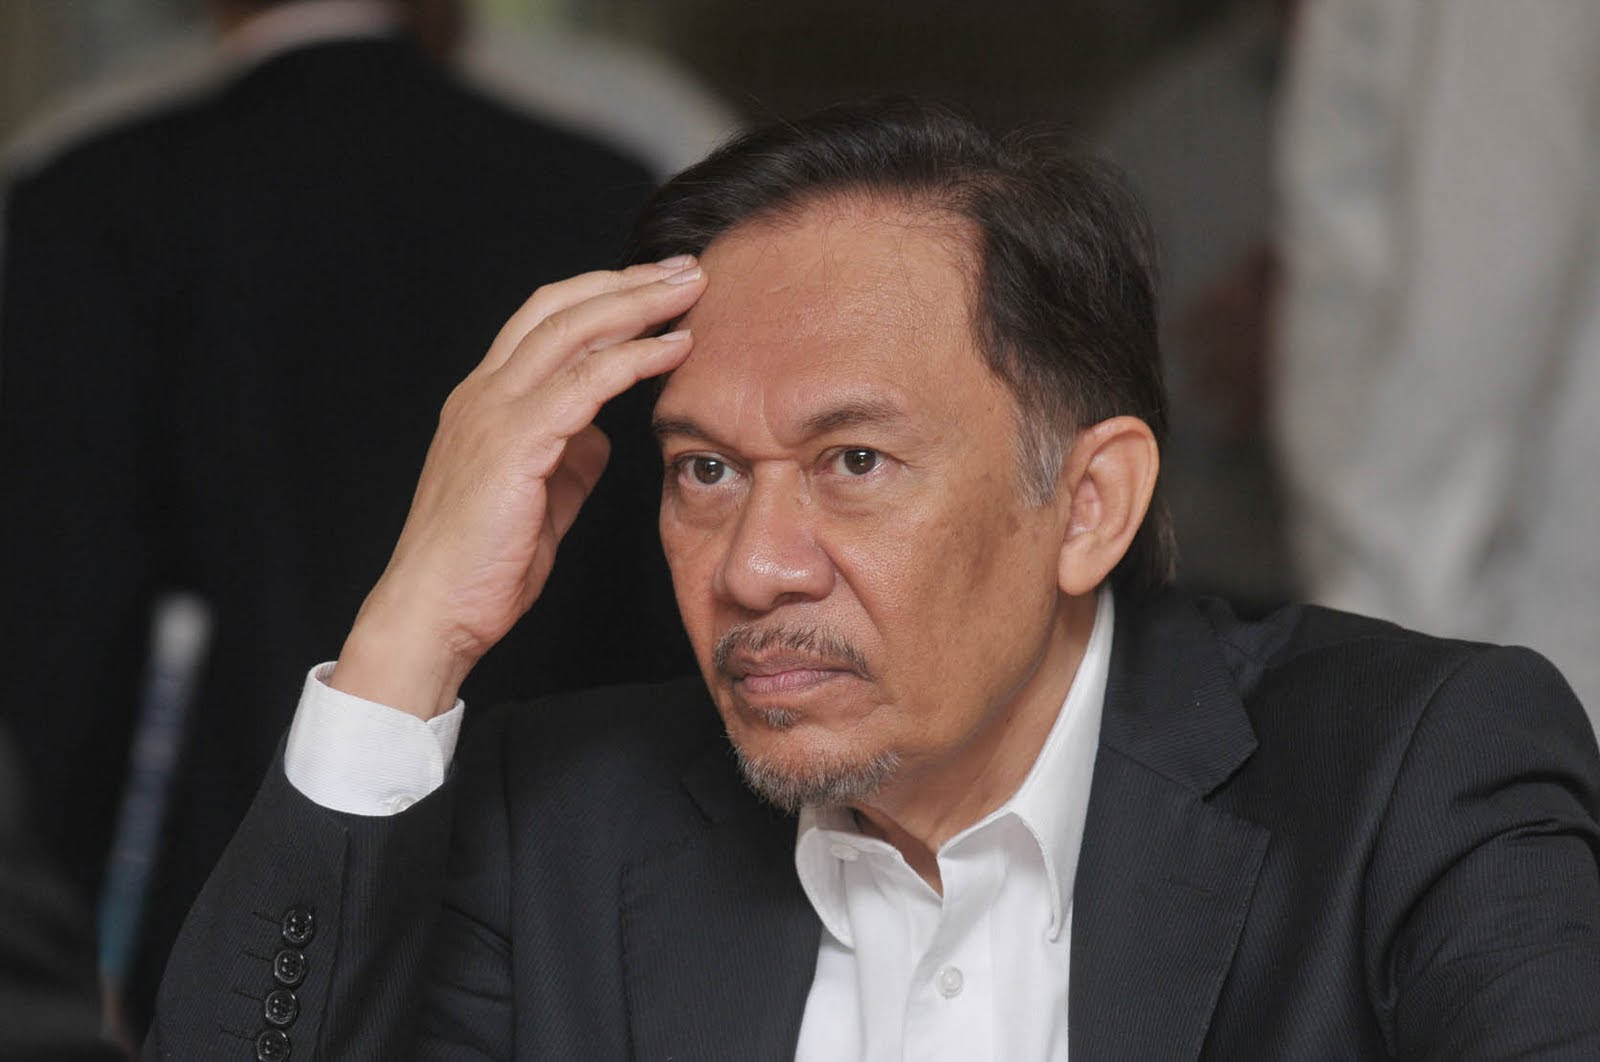 Anwar has been kept in harsh physical conditions for a man approaching his 70s